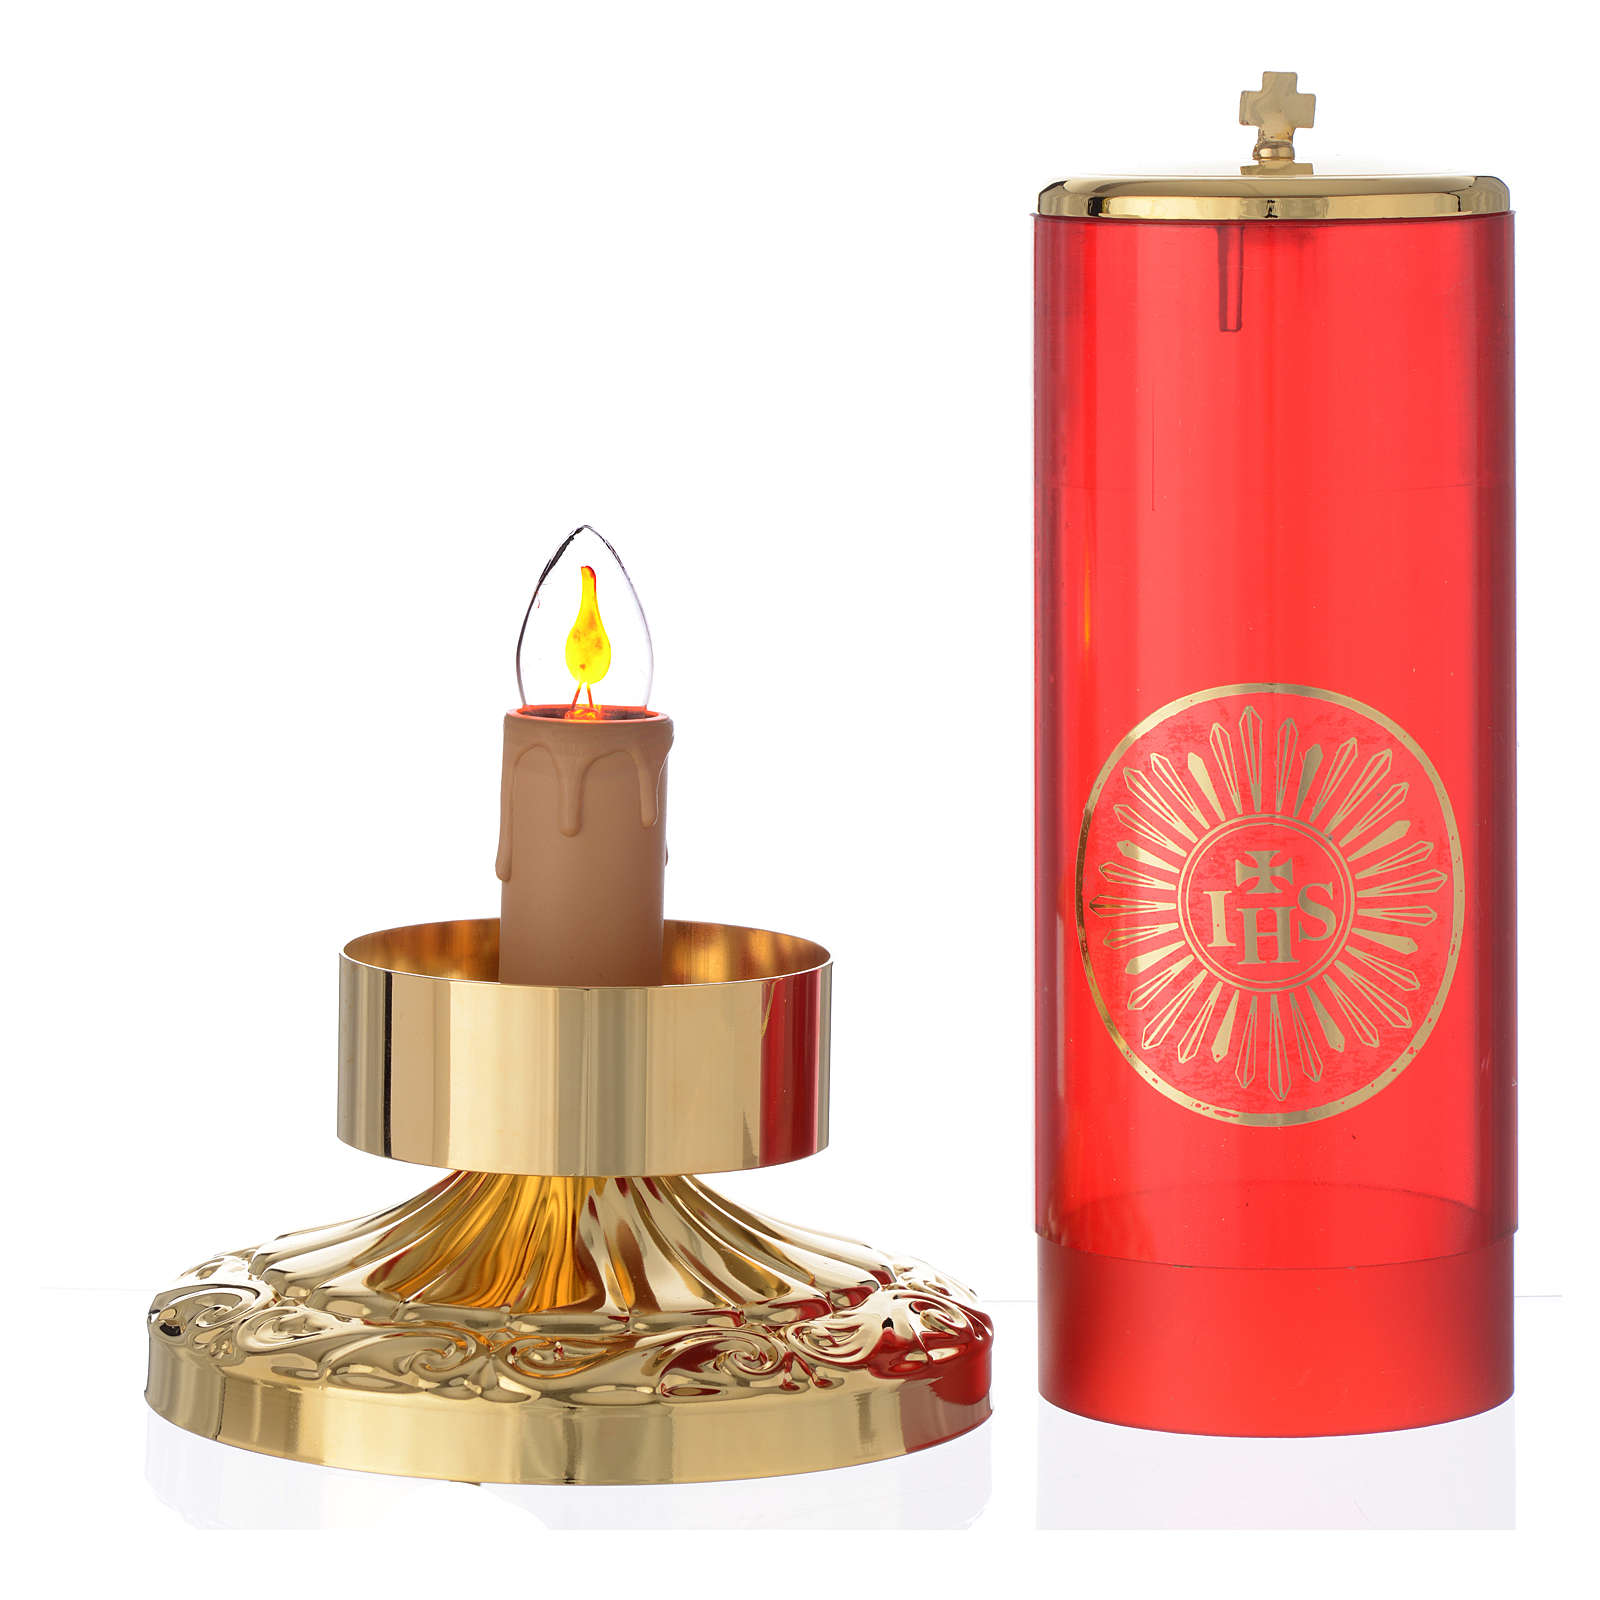 Electric lamp for the Blessed Sacrament, empire style 3